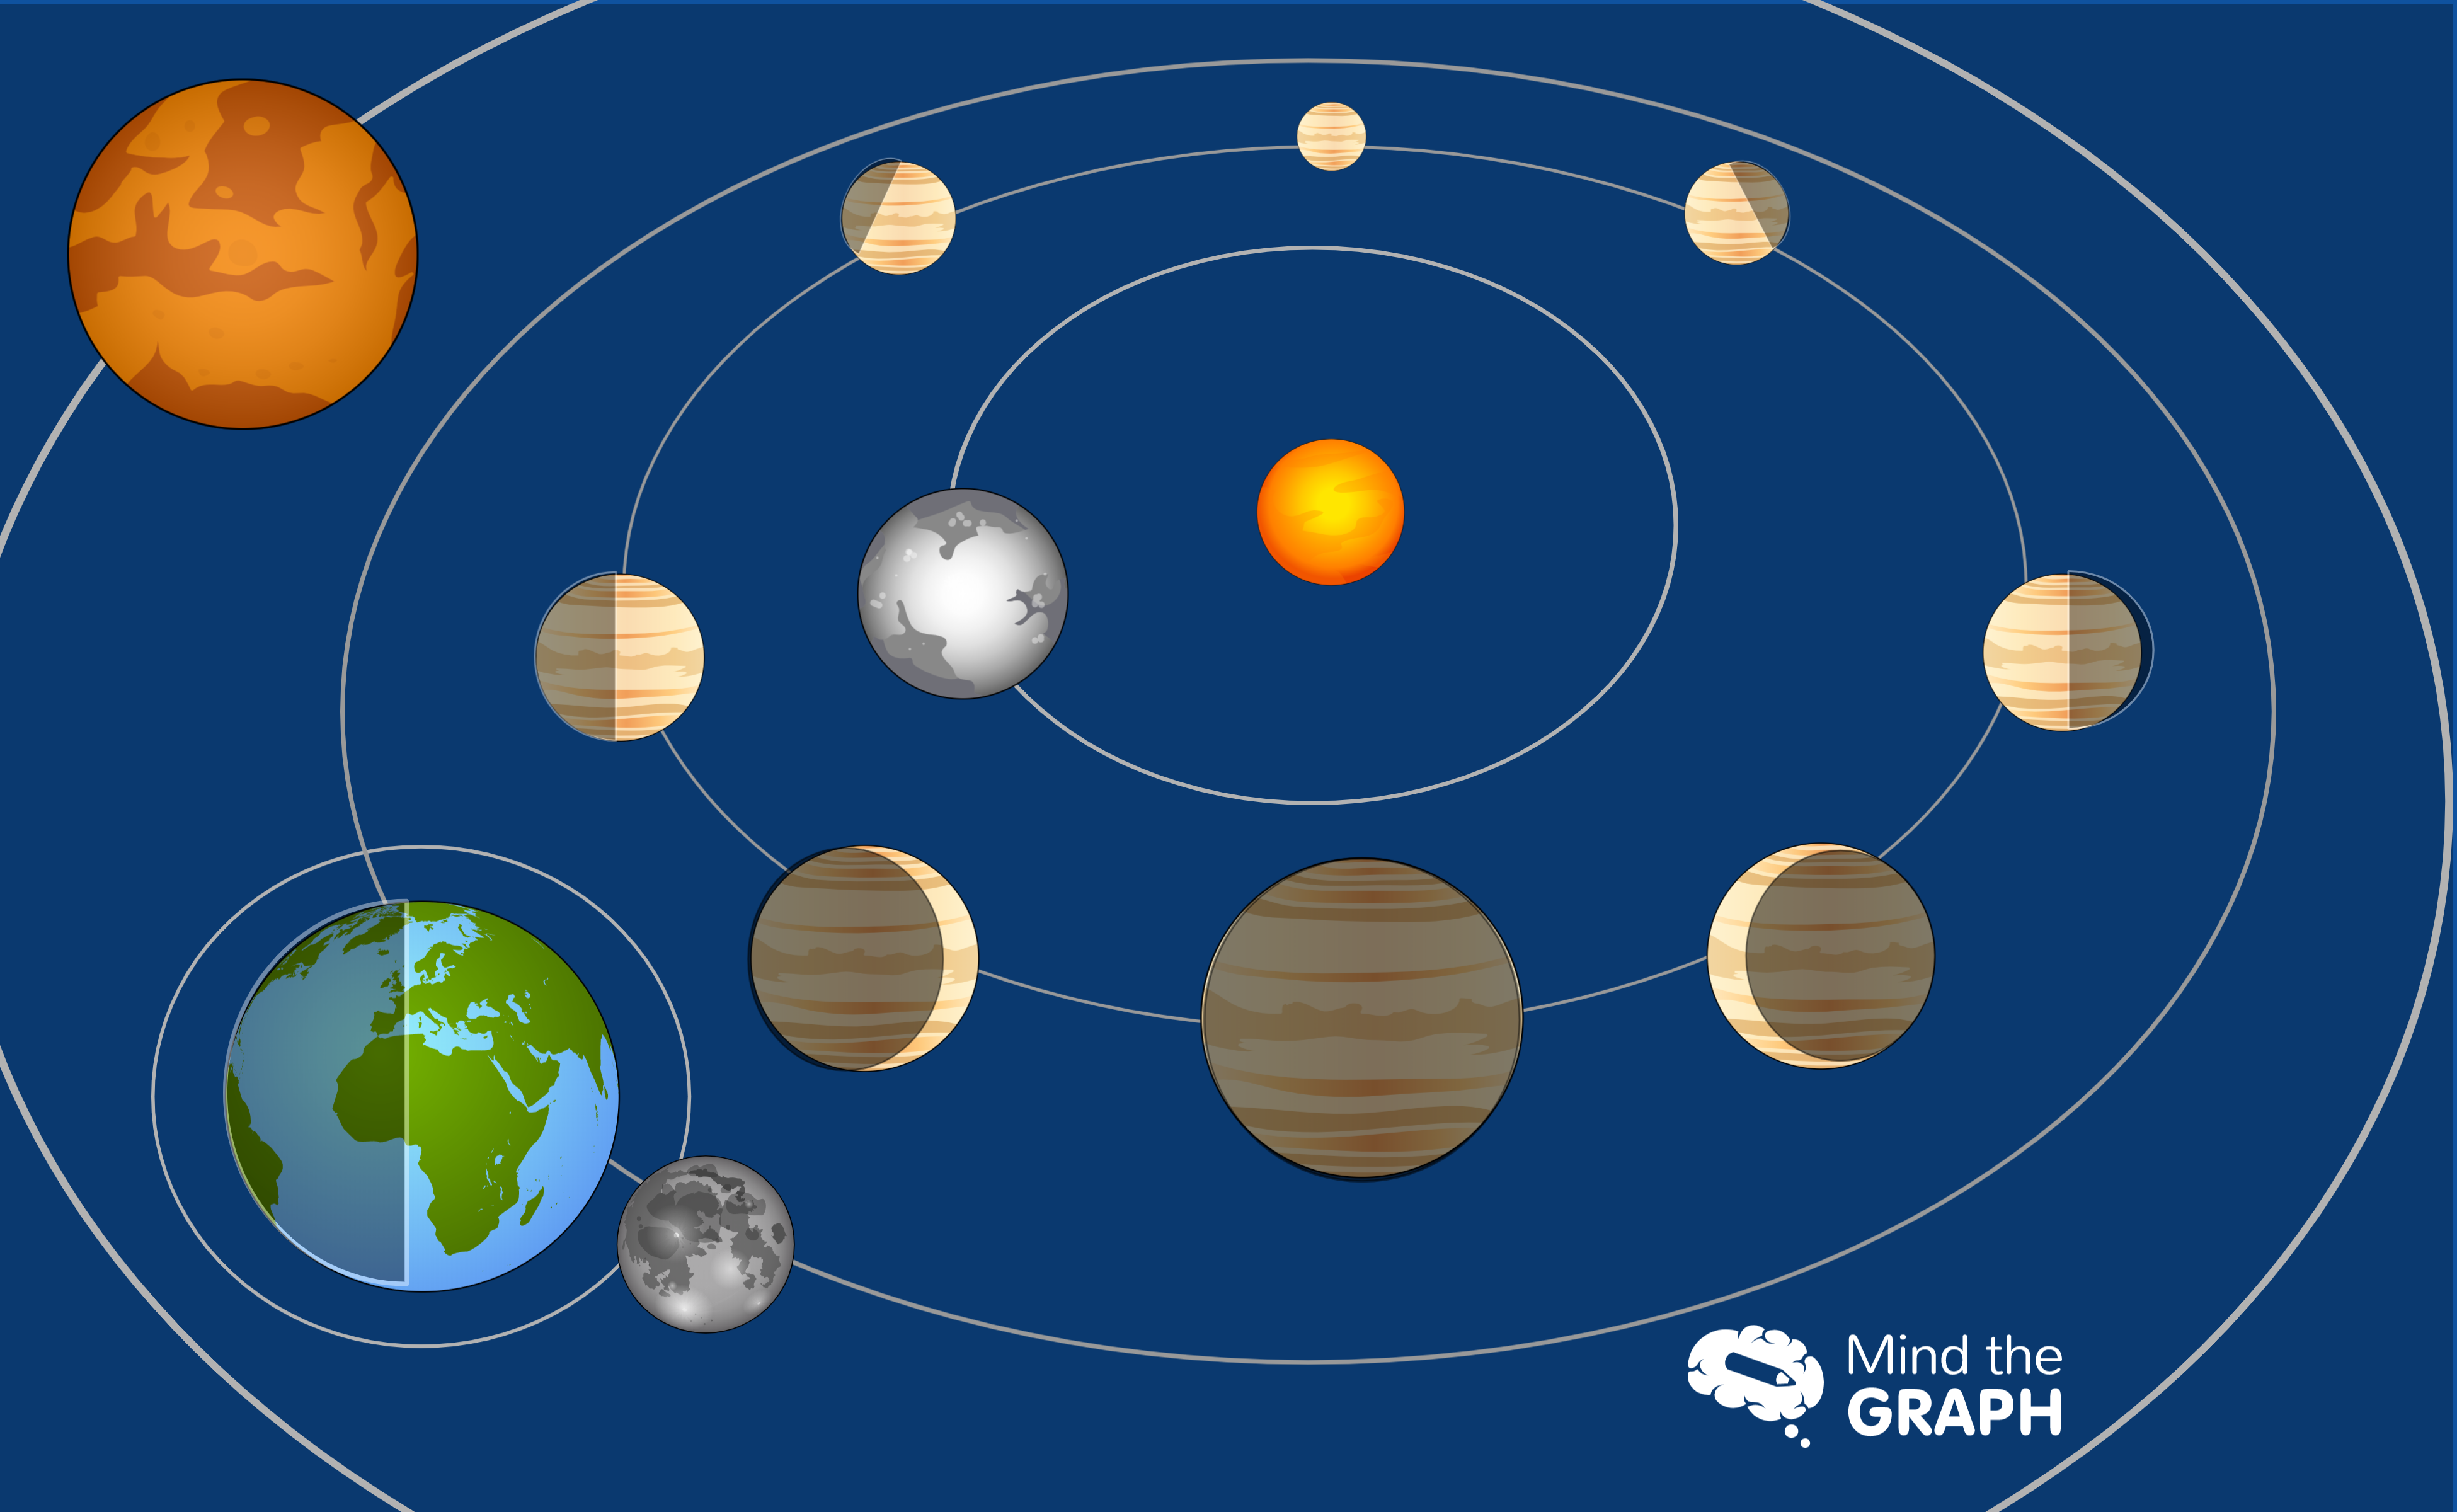 Flat Earth and geocentrism: How to show that the Earth orbits the Sun